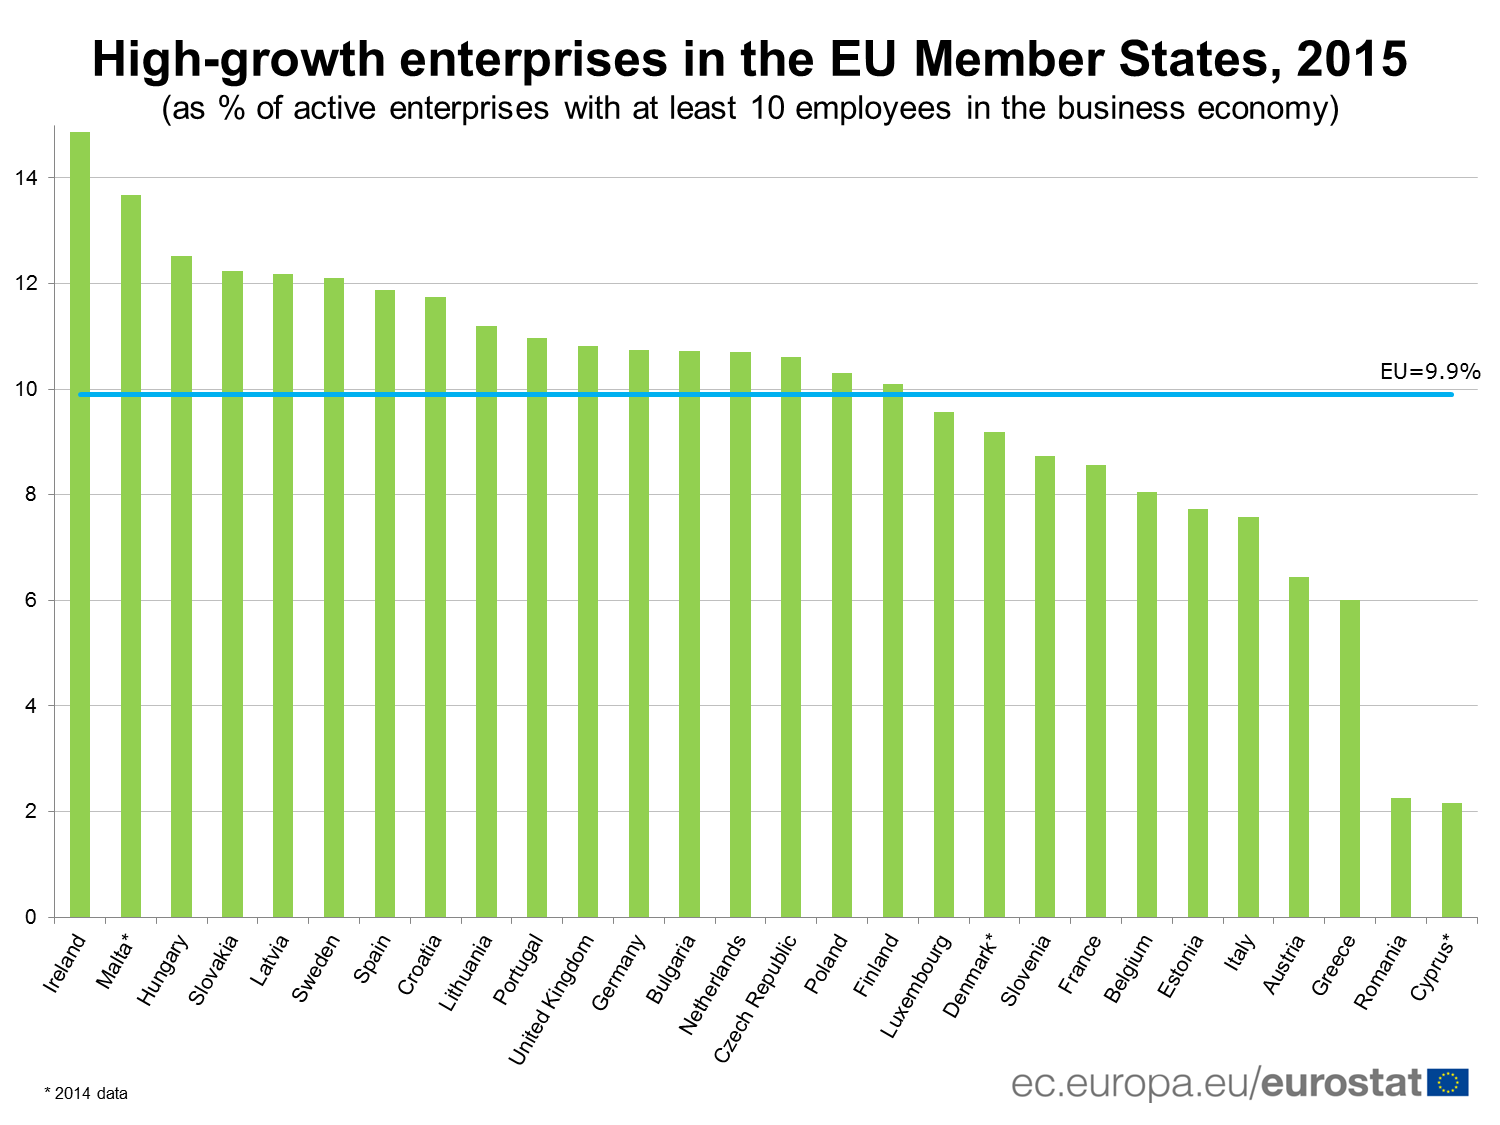 High-growth enterprises in the EU Member States, 2015